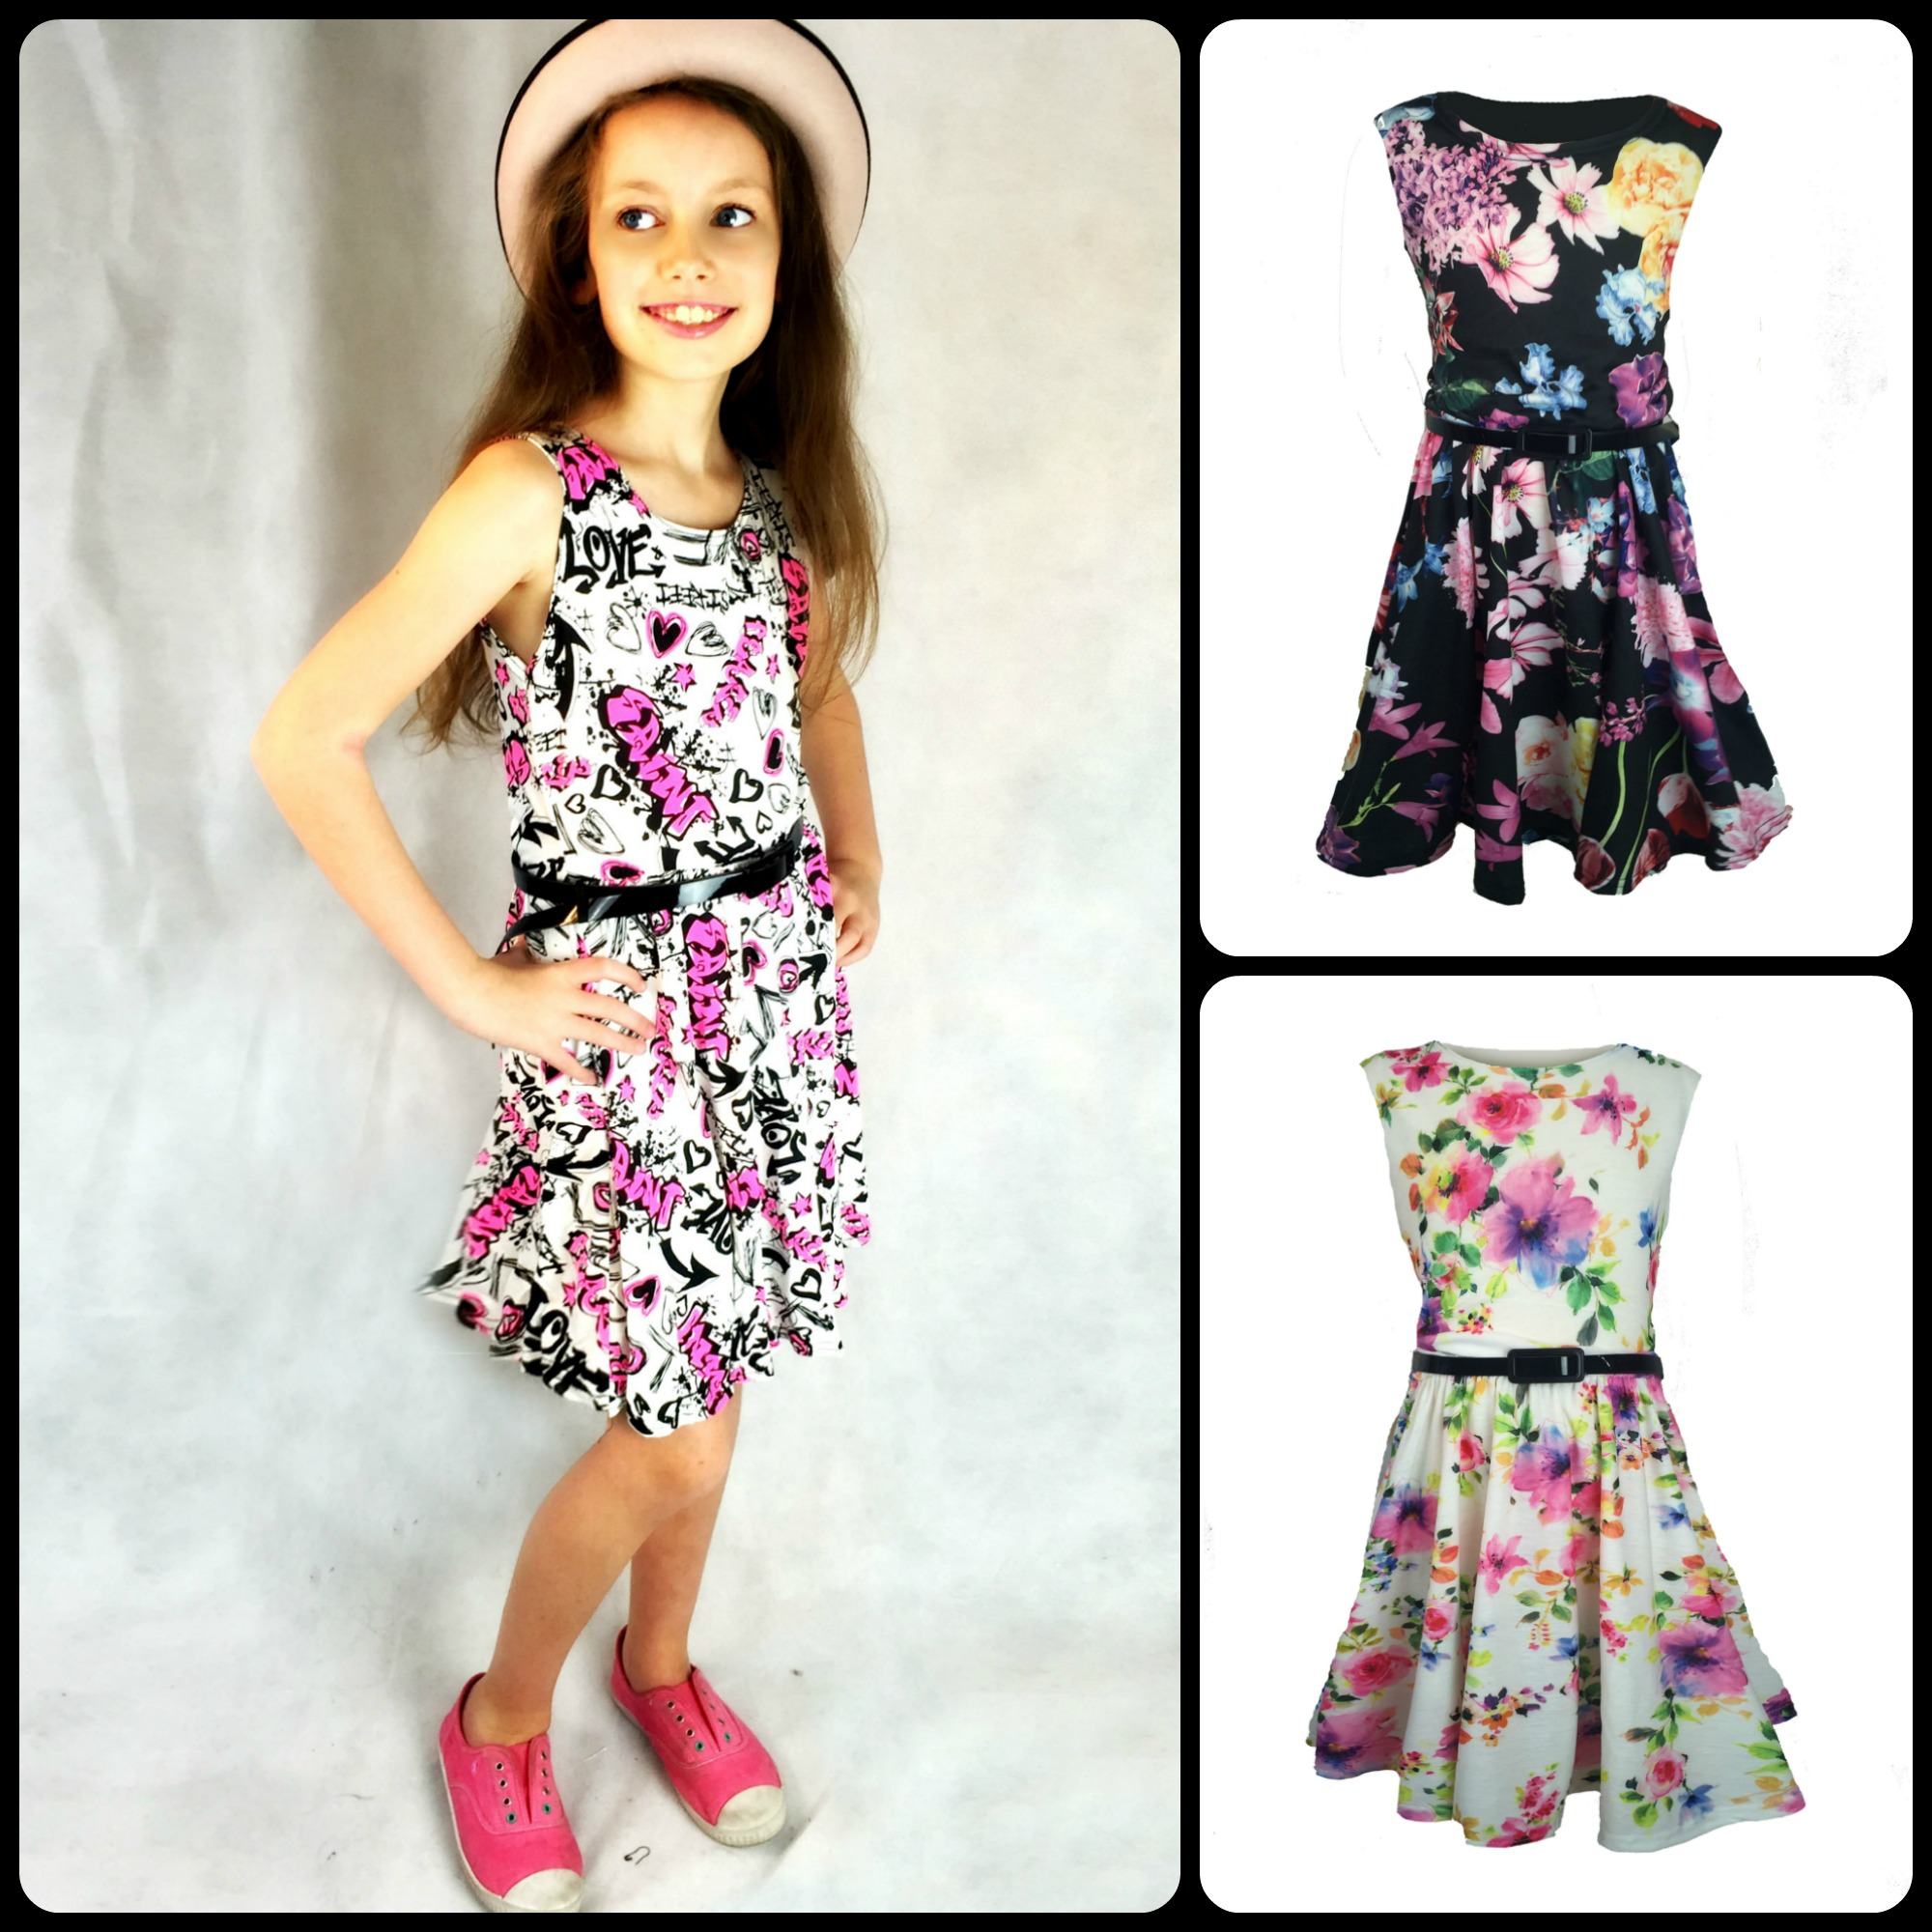 81fcde26c8cb ... Girls knee length skater dress with patent belt, graffiti or floral  print. Sold Out New. PicMonkey Collage6